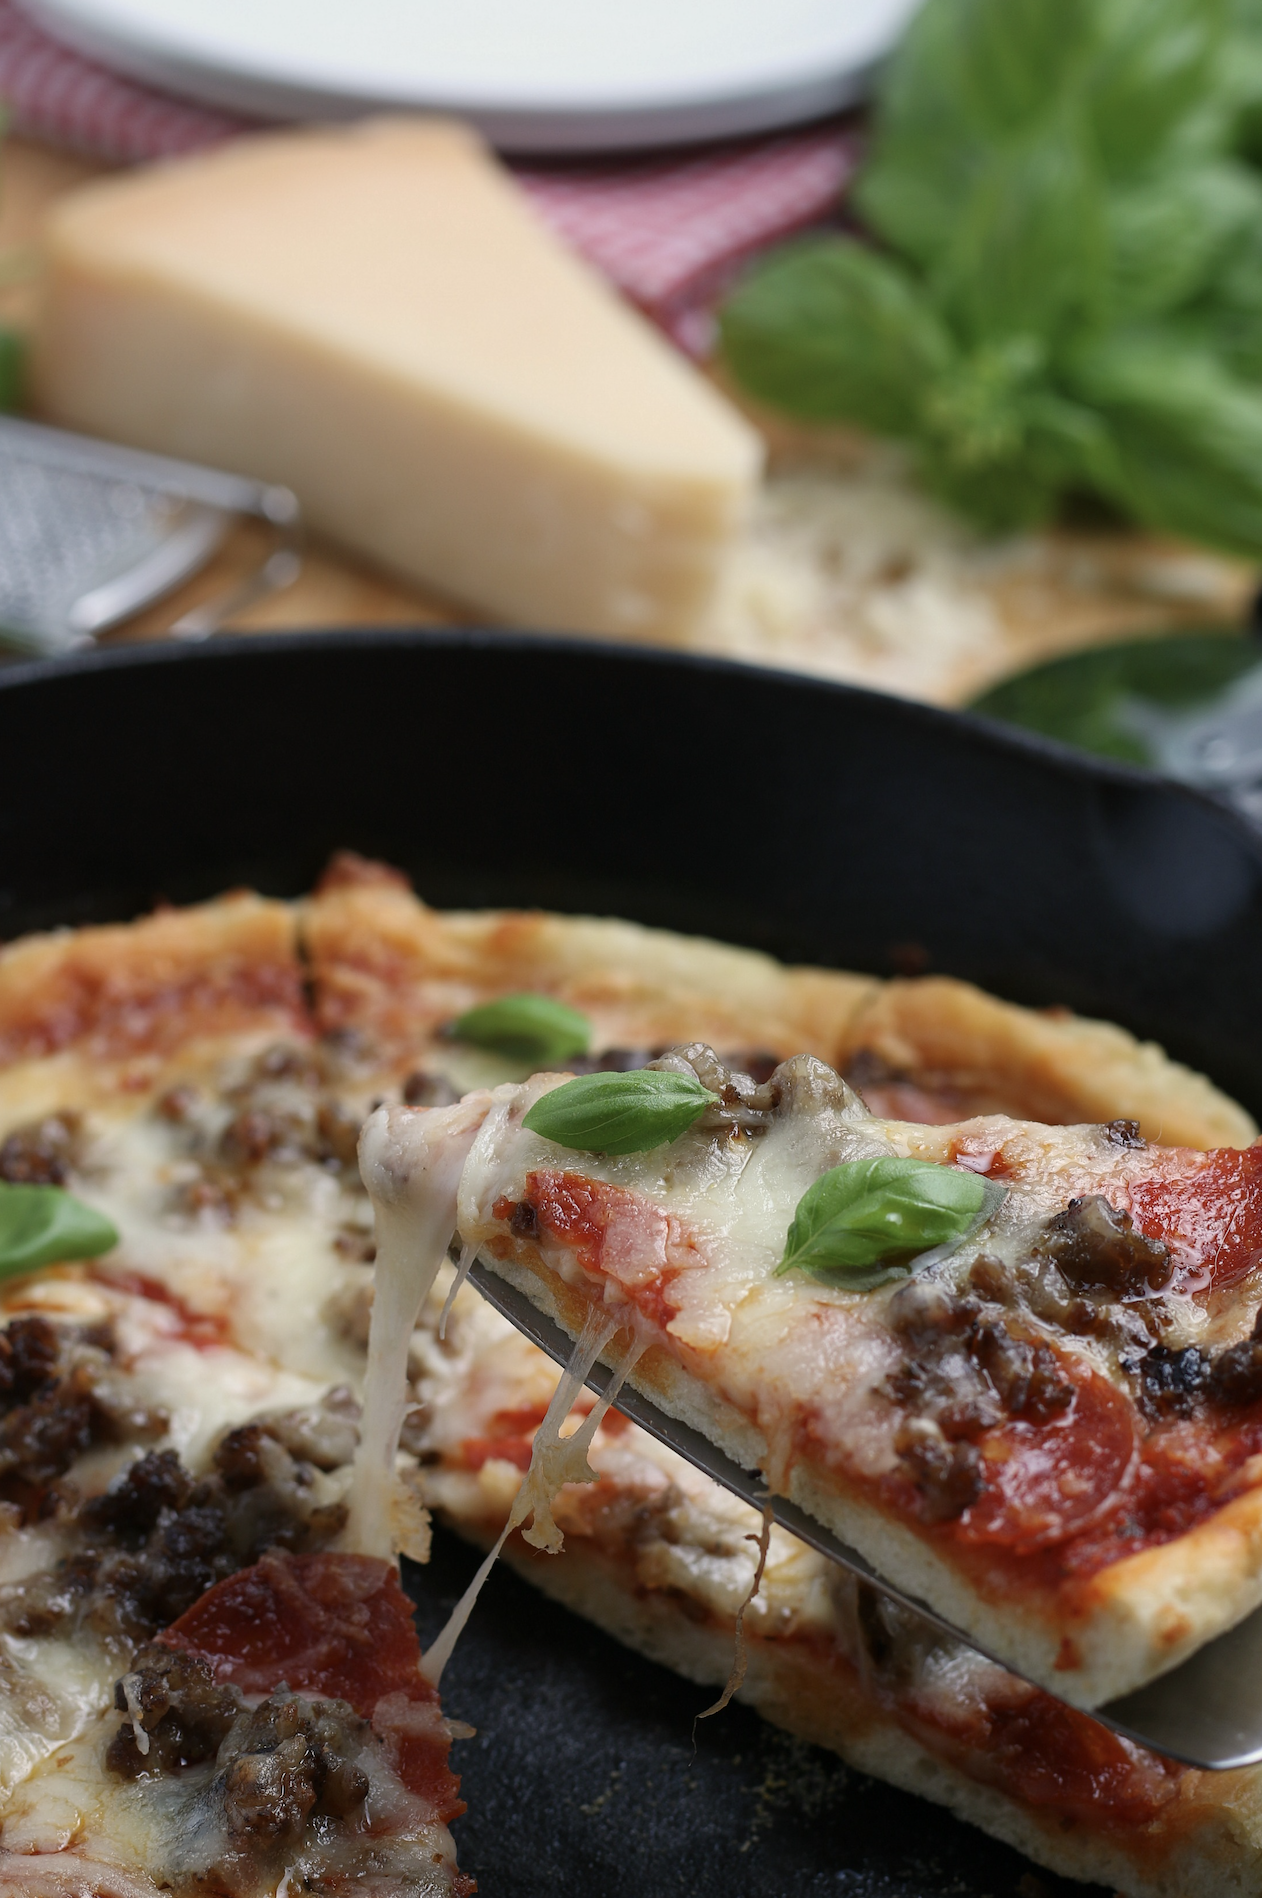 This quick, easy homemade Cast Iron Skillet Pizza recipe is the best homemade pizza you'll ever make! Get my recipe and try it today!